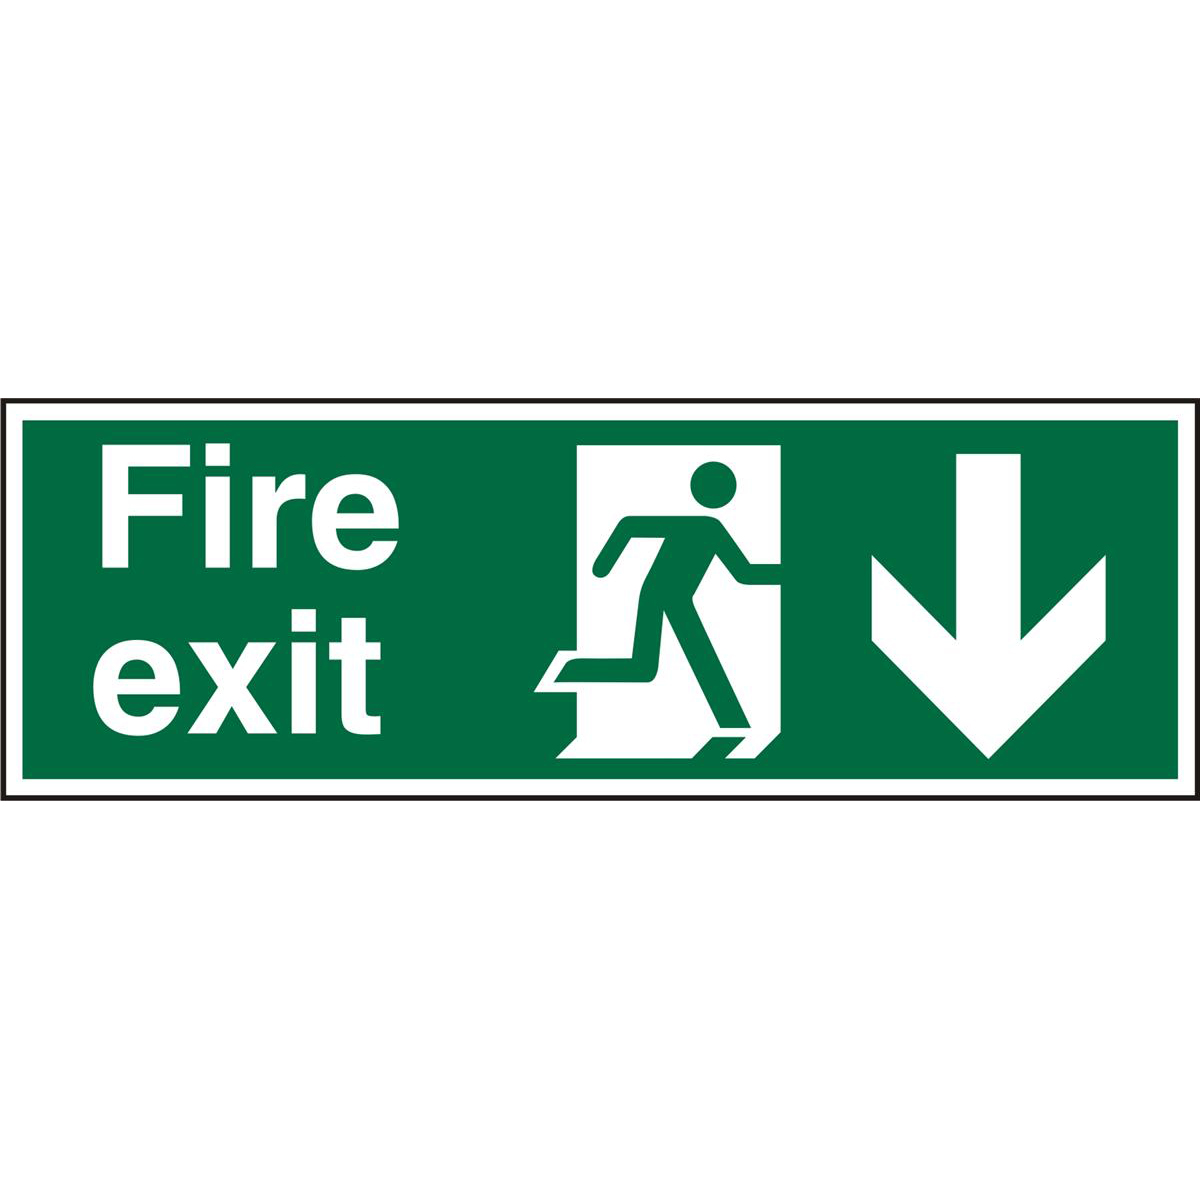 PrestigeSign 2mm 300x100 FireExit Running Right &Arrow Down Ref ACSP124300x100 *Up to 10 Day Leadtime*